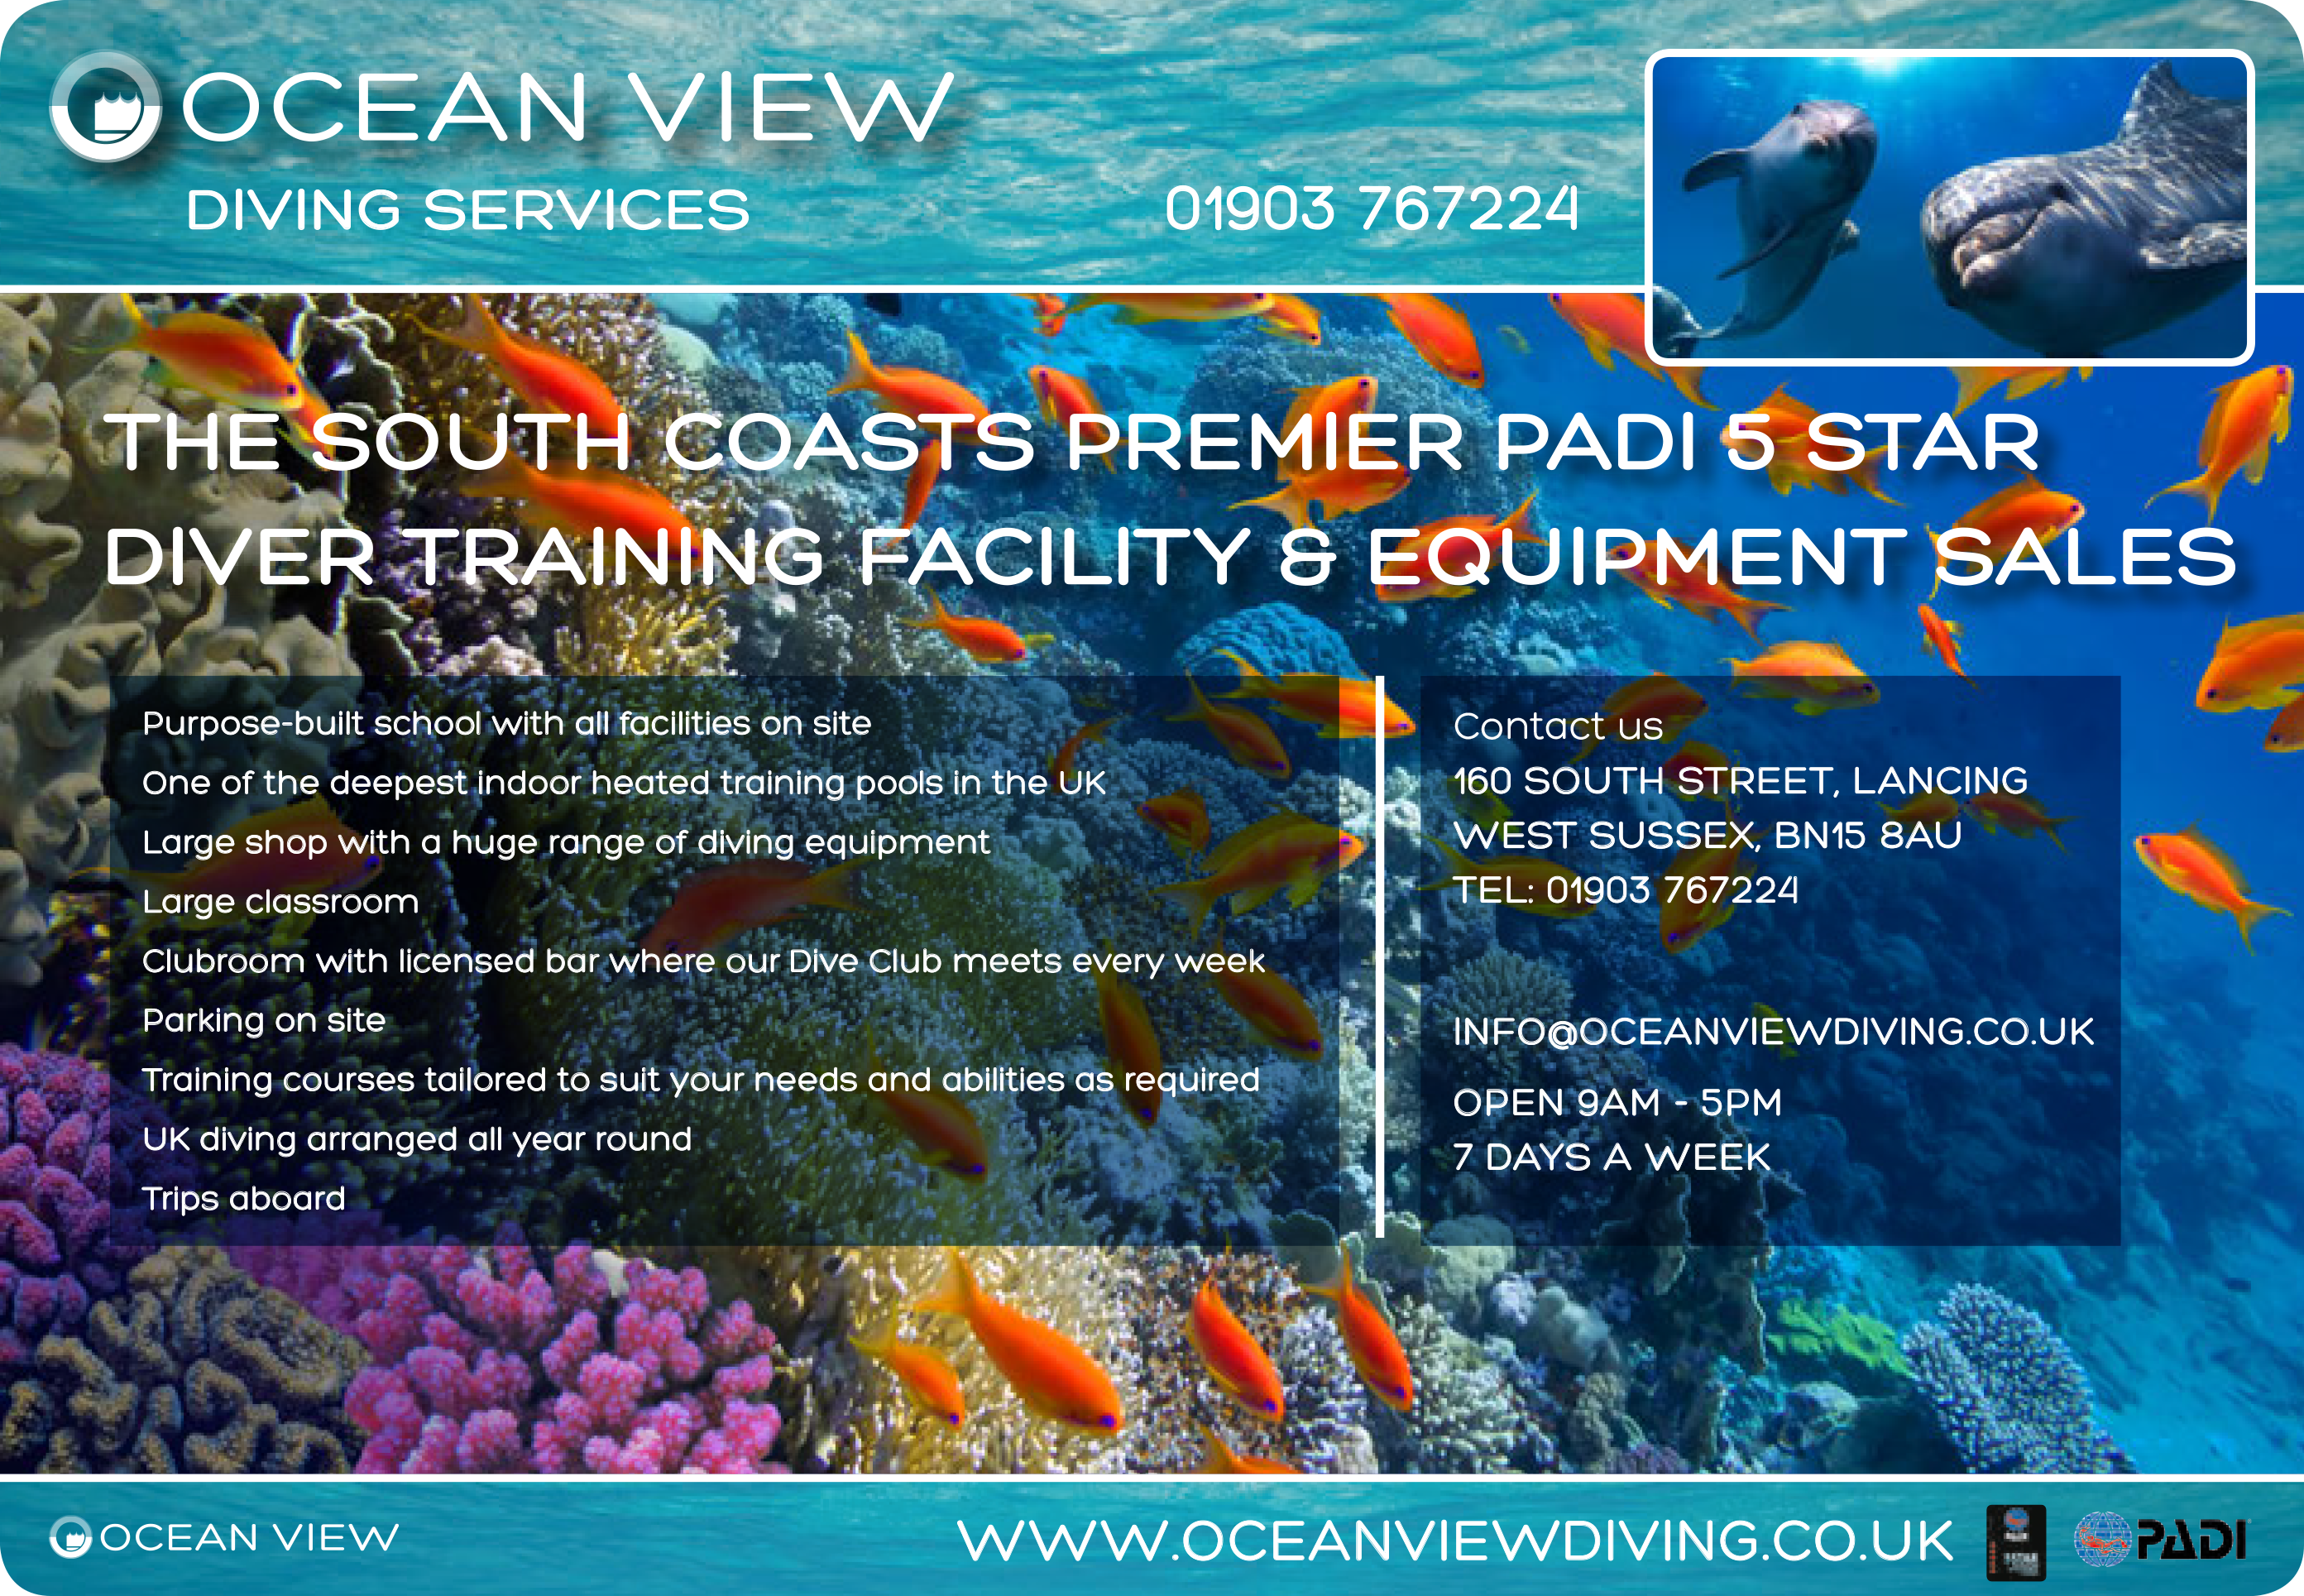 Ocean View Diving Services